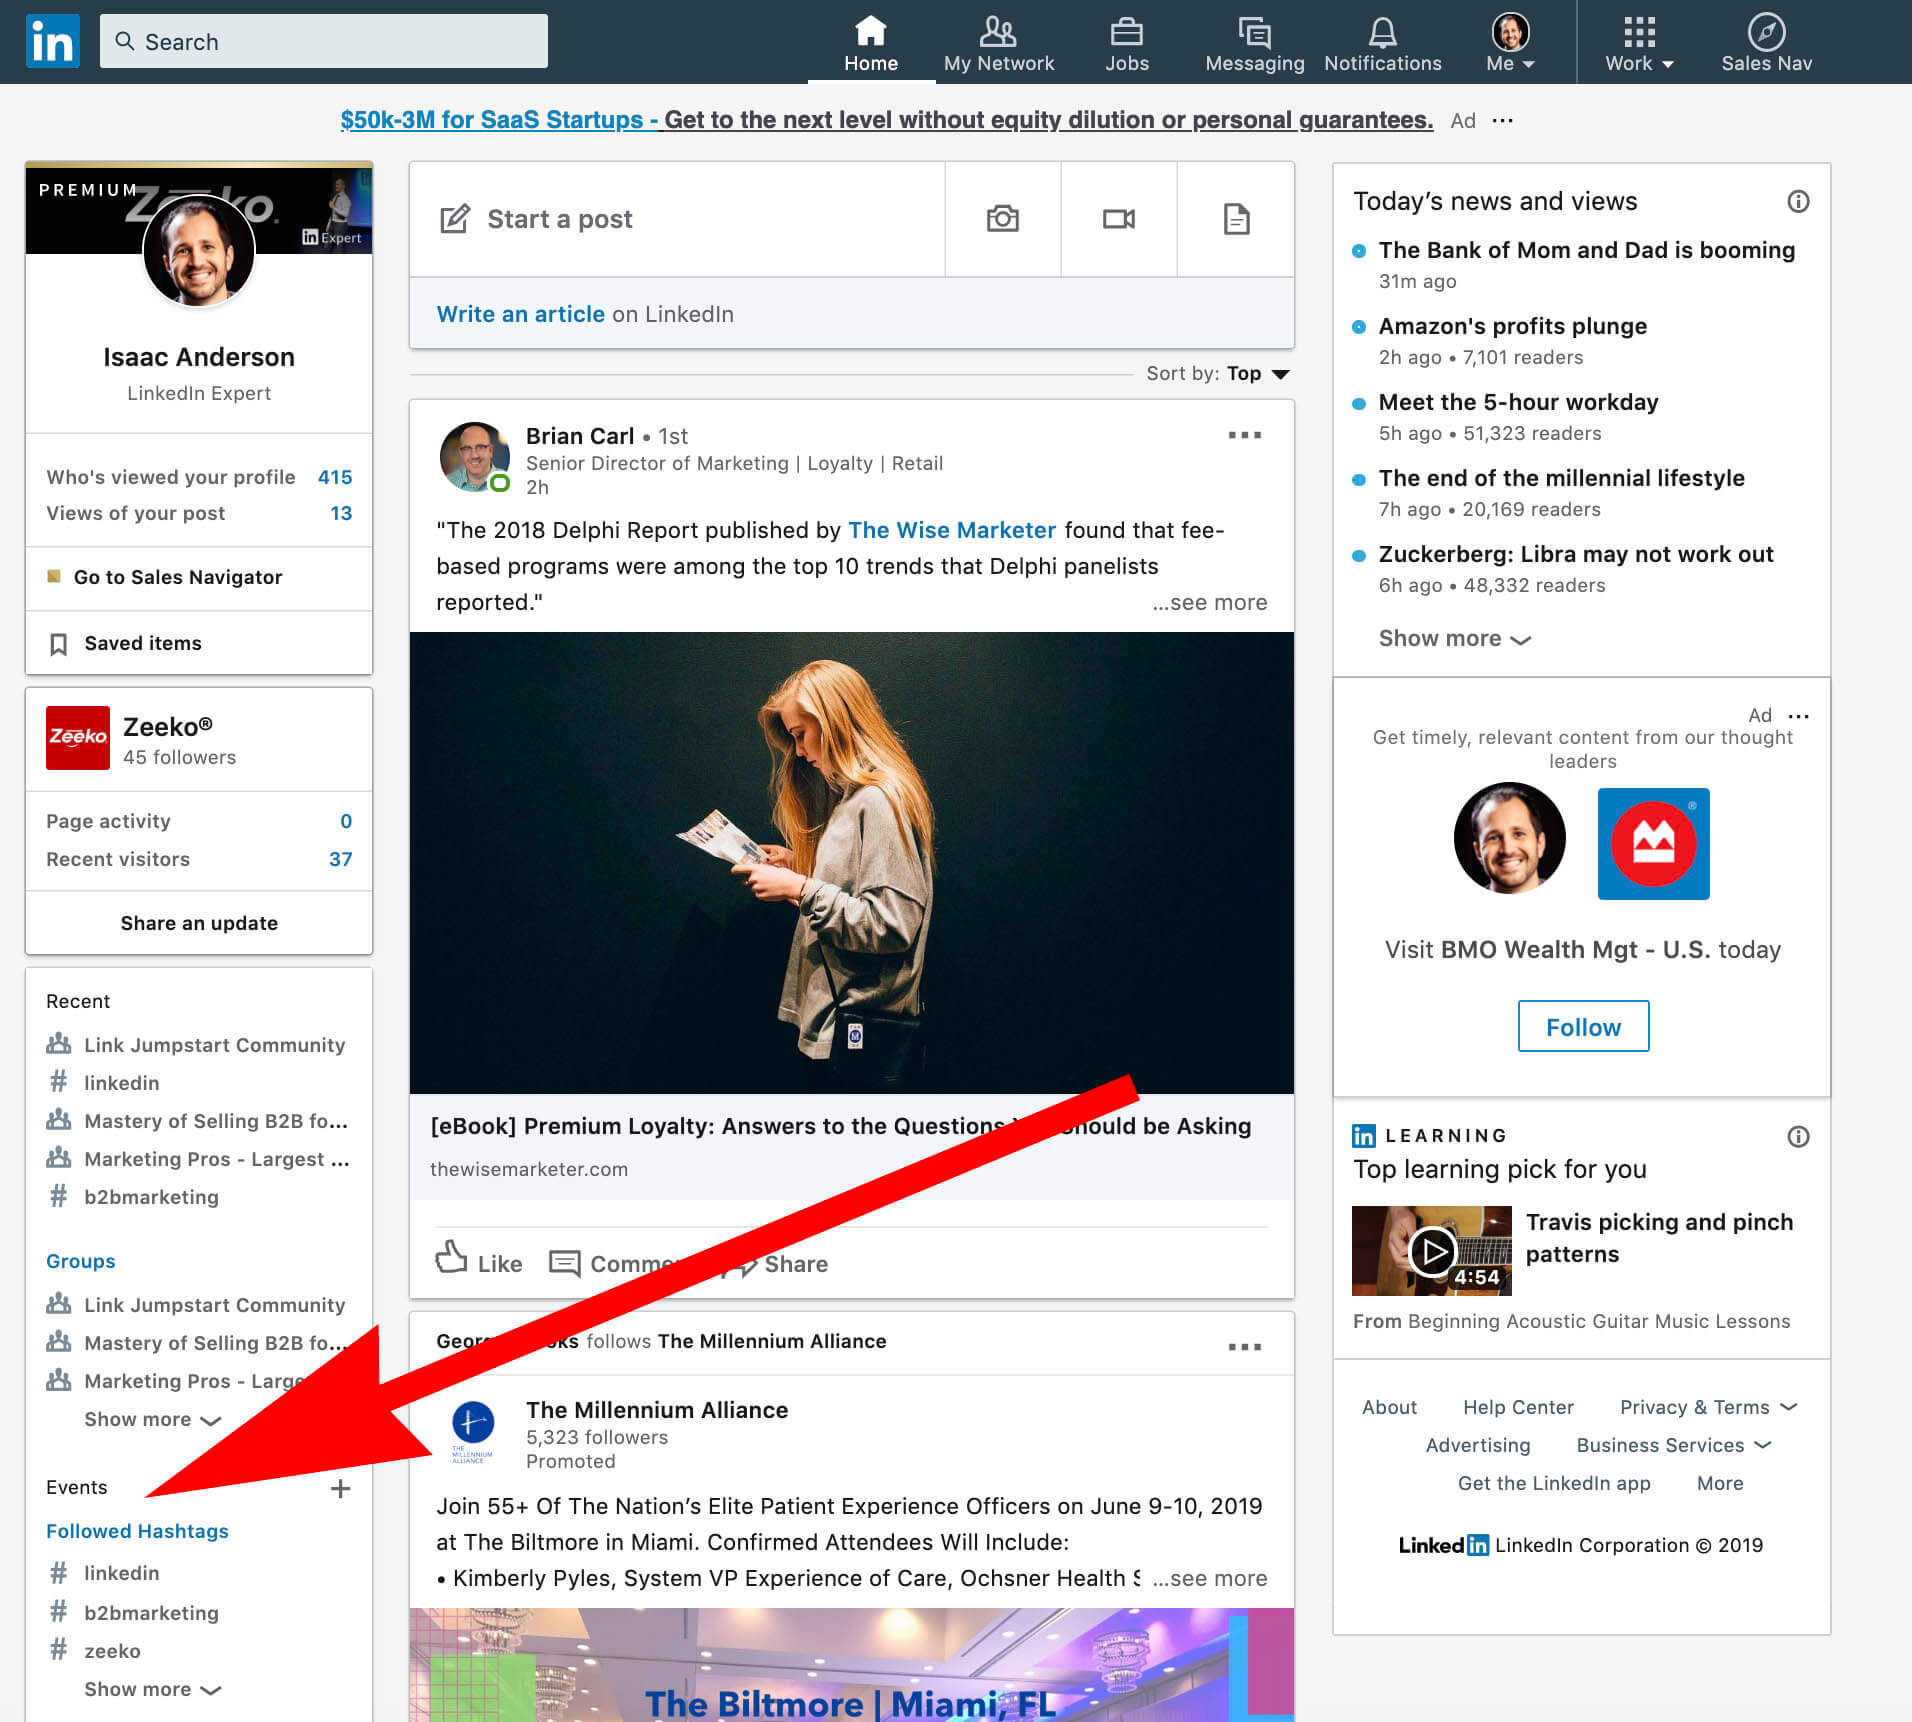 How to use LInkedin Events - Click add event